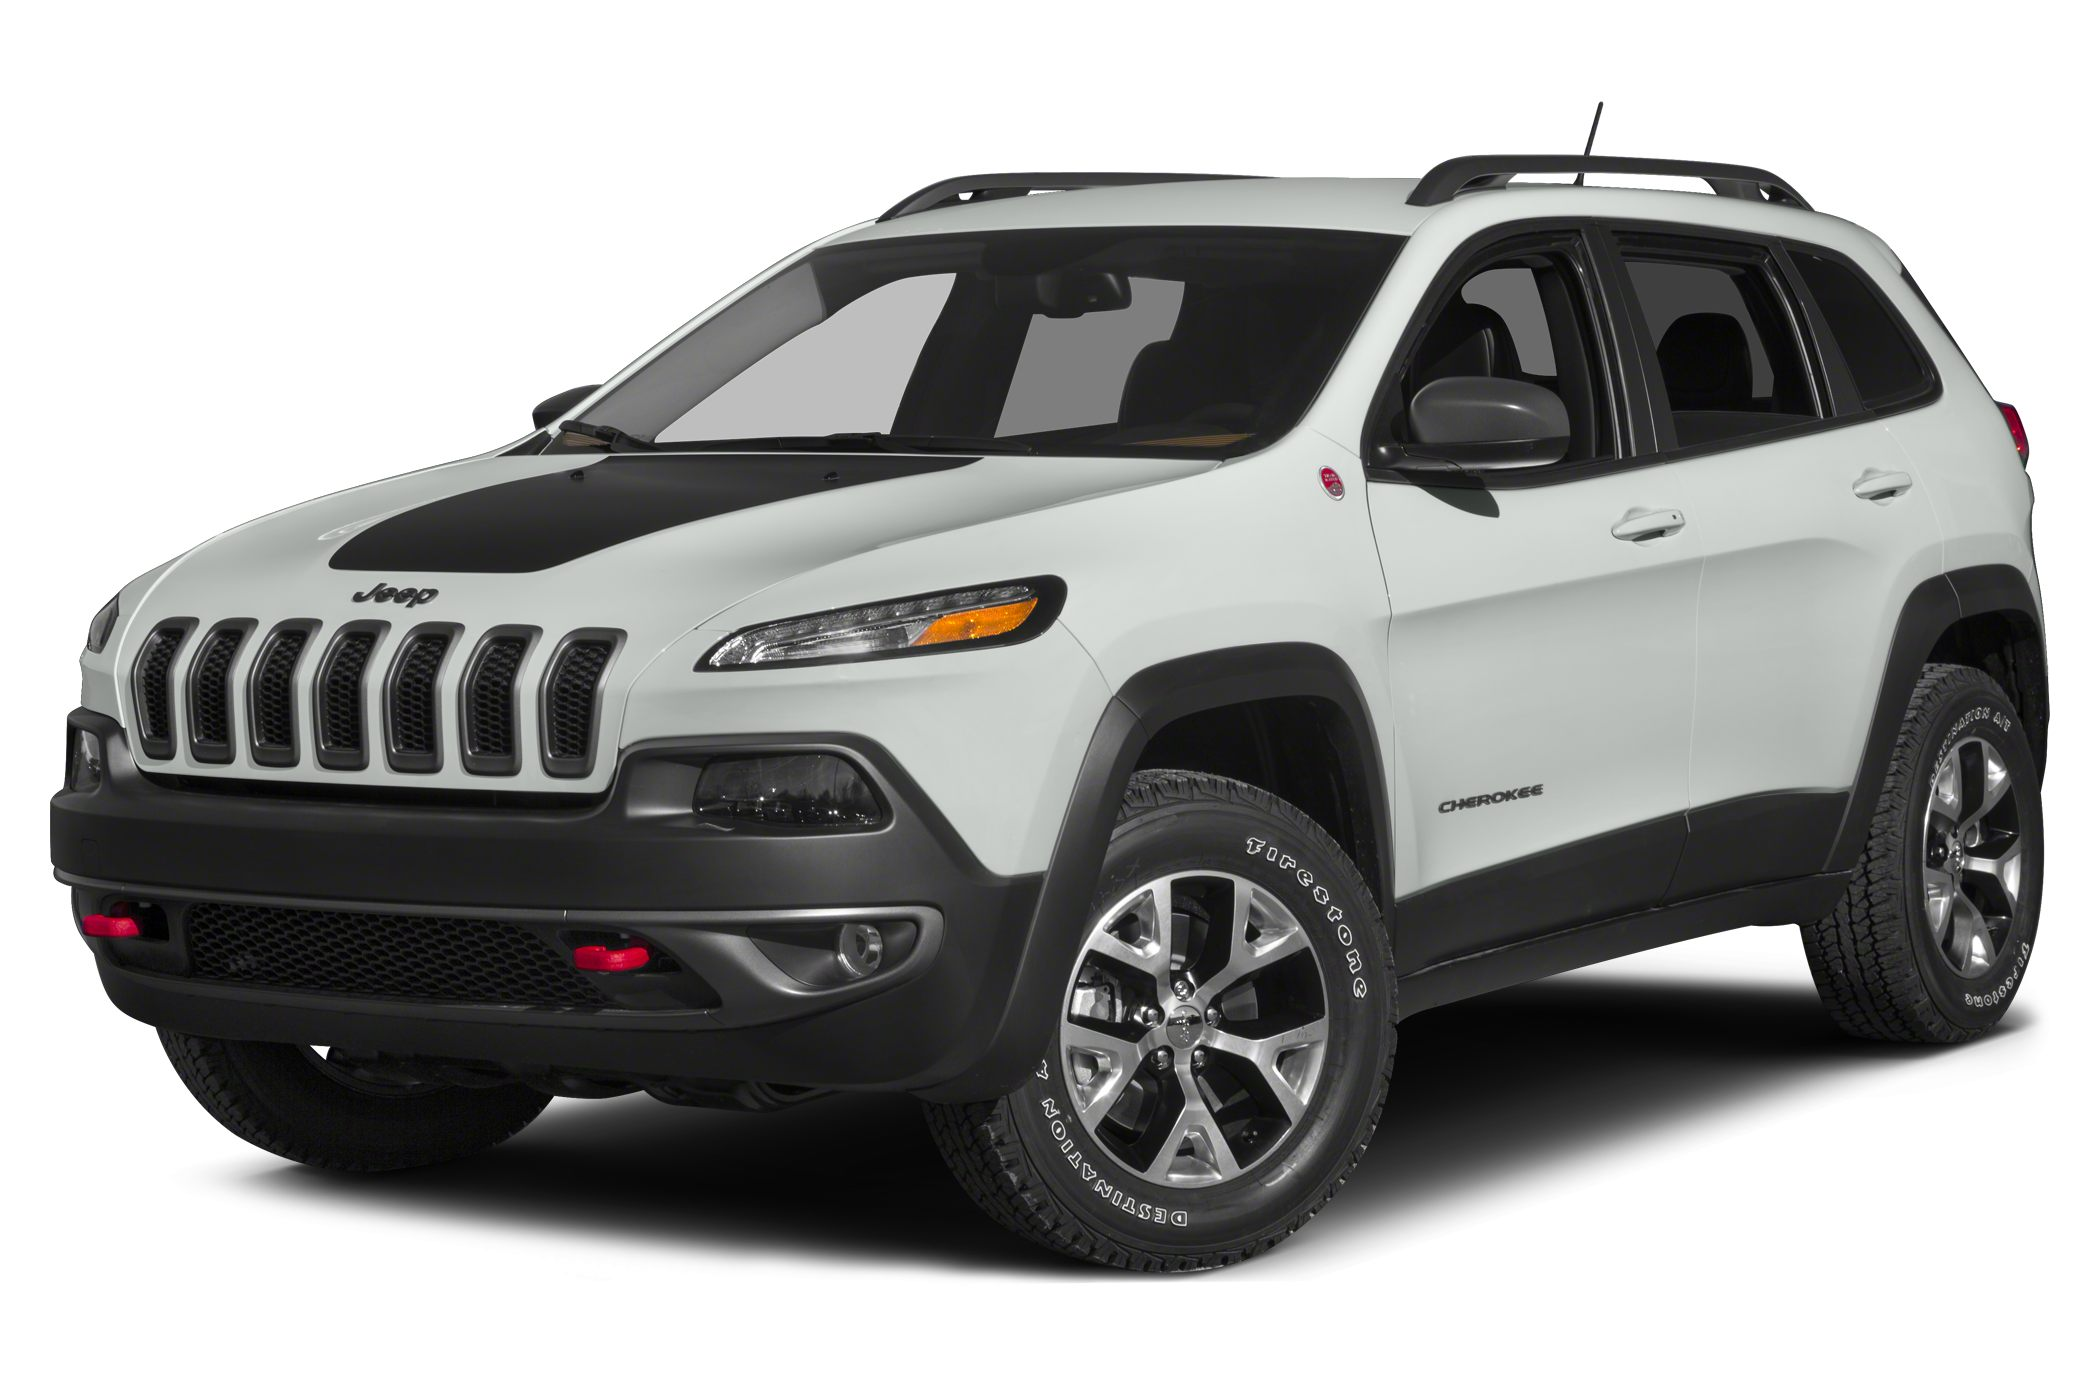 2015 Jeep Cherokee Trailhawk SUV for sale in Tacoma for $42,584 with 12 miles